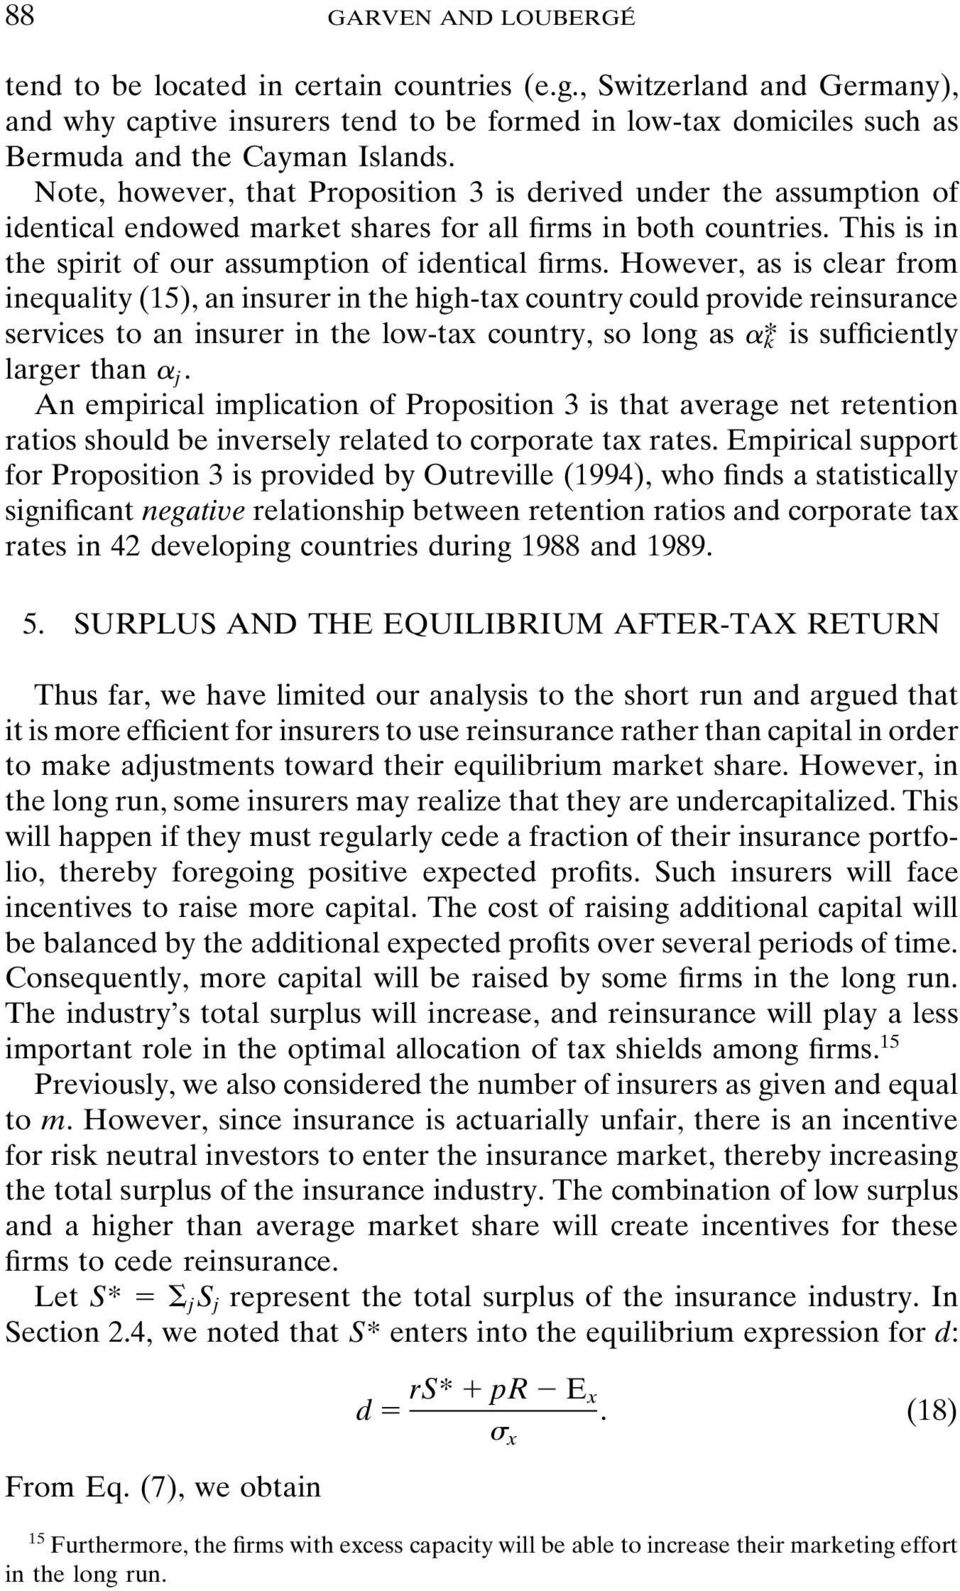 However, as is clear from inequality (15), an insurer in the high-tax country could provide reinsurance services to an insurer in the low-tax country, so long as * k is sufficiently larger than j.